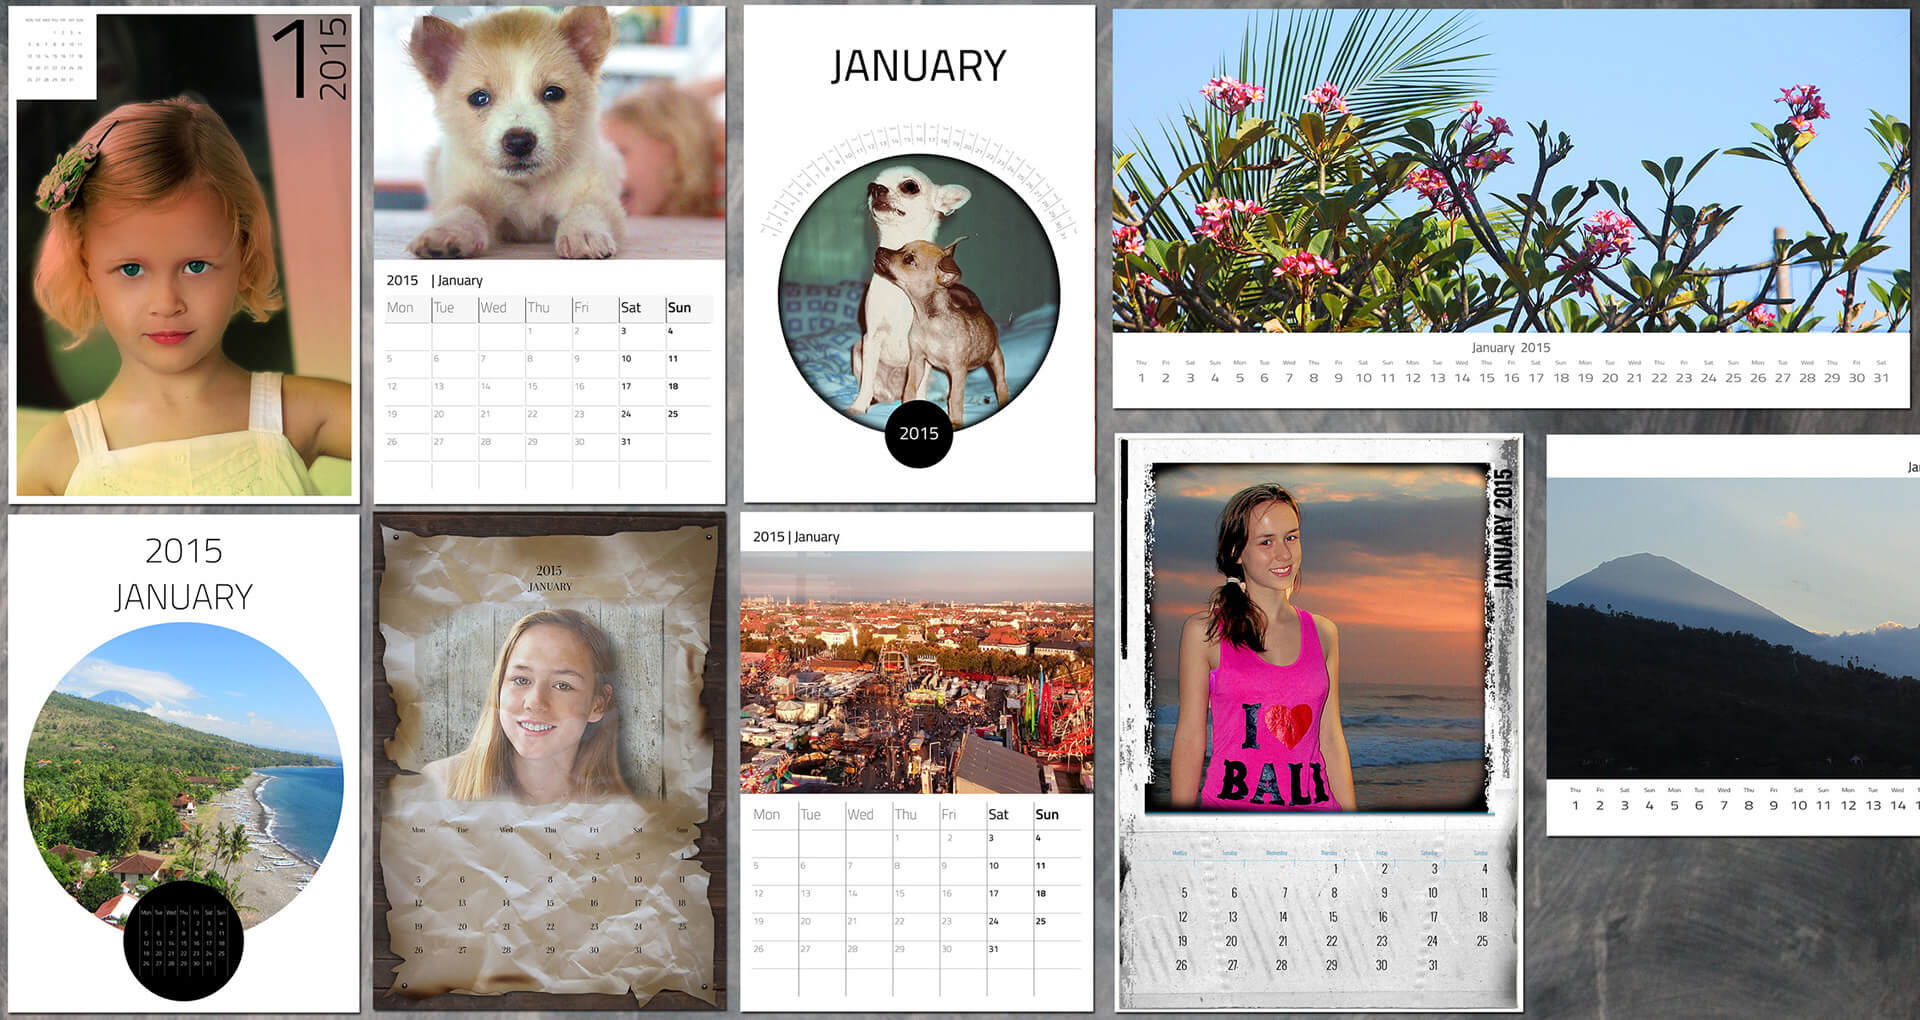 webtoprint fotobuch variable grafik walltattoo popart calendar smartphone case greeting card 5 2